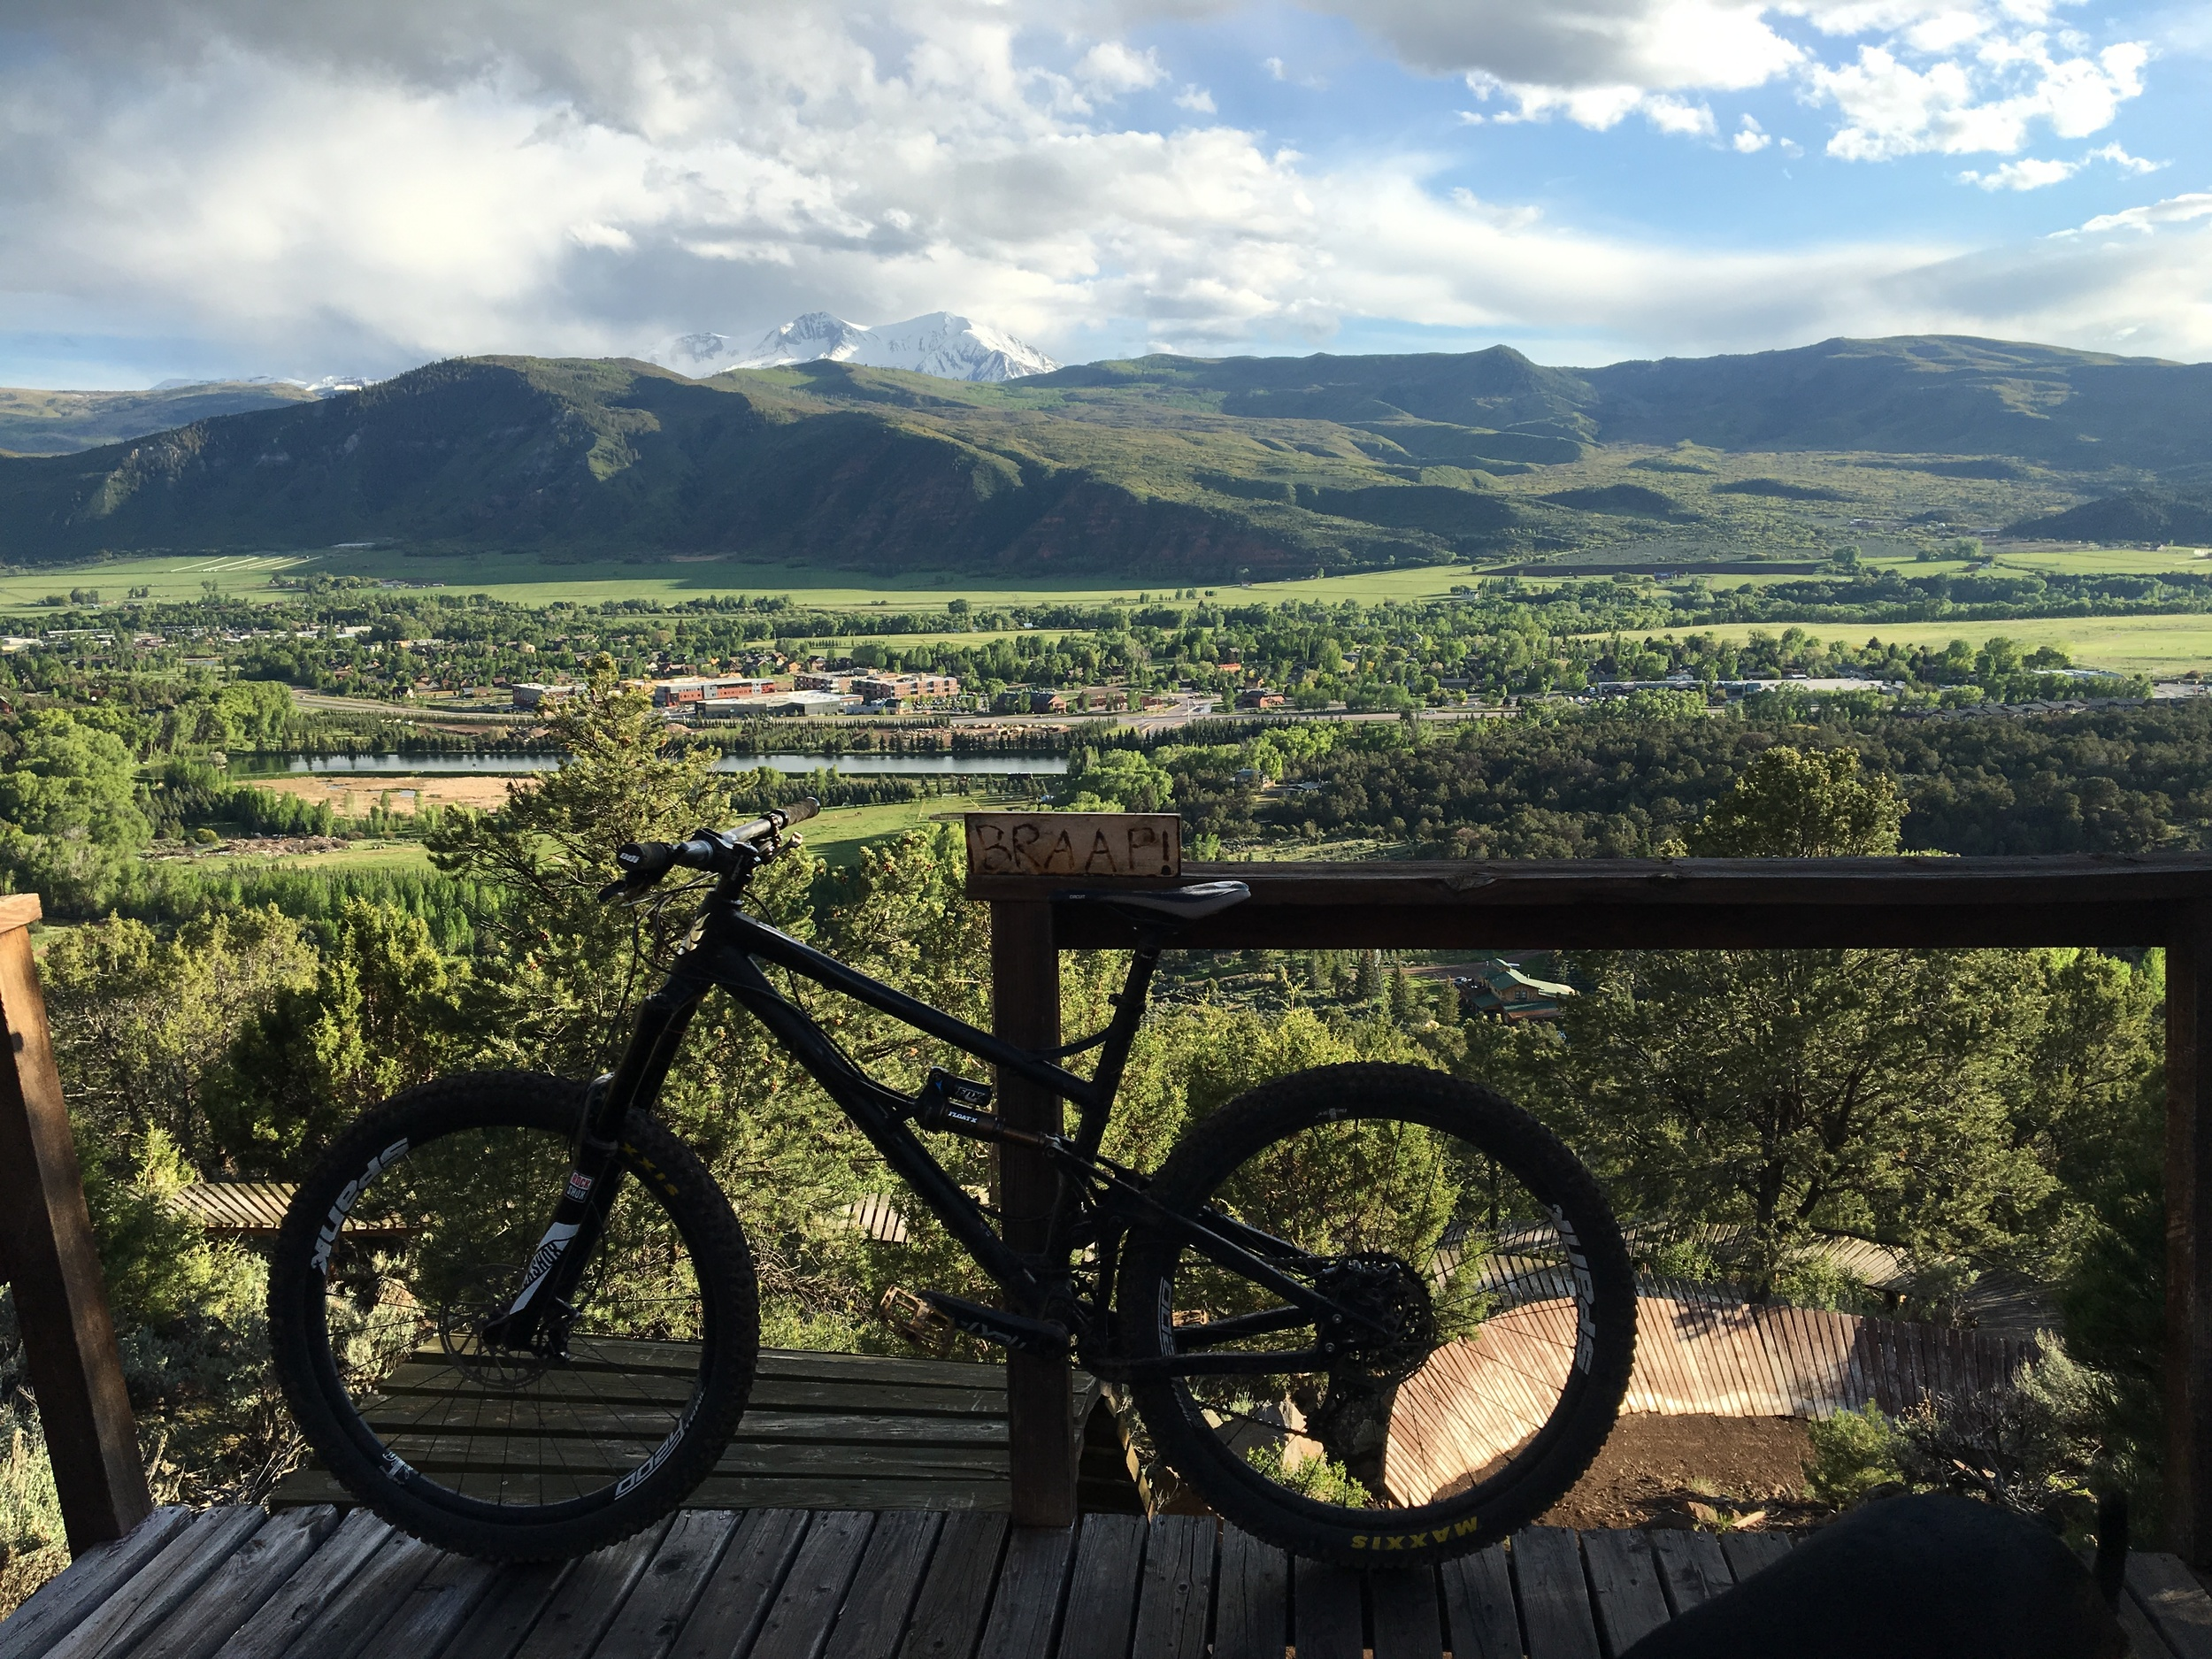 The view from the top of the park encompassing 600 vertical, trails of all disciplines in a completely private setting. Come Ride On! with us!